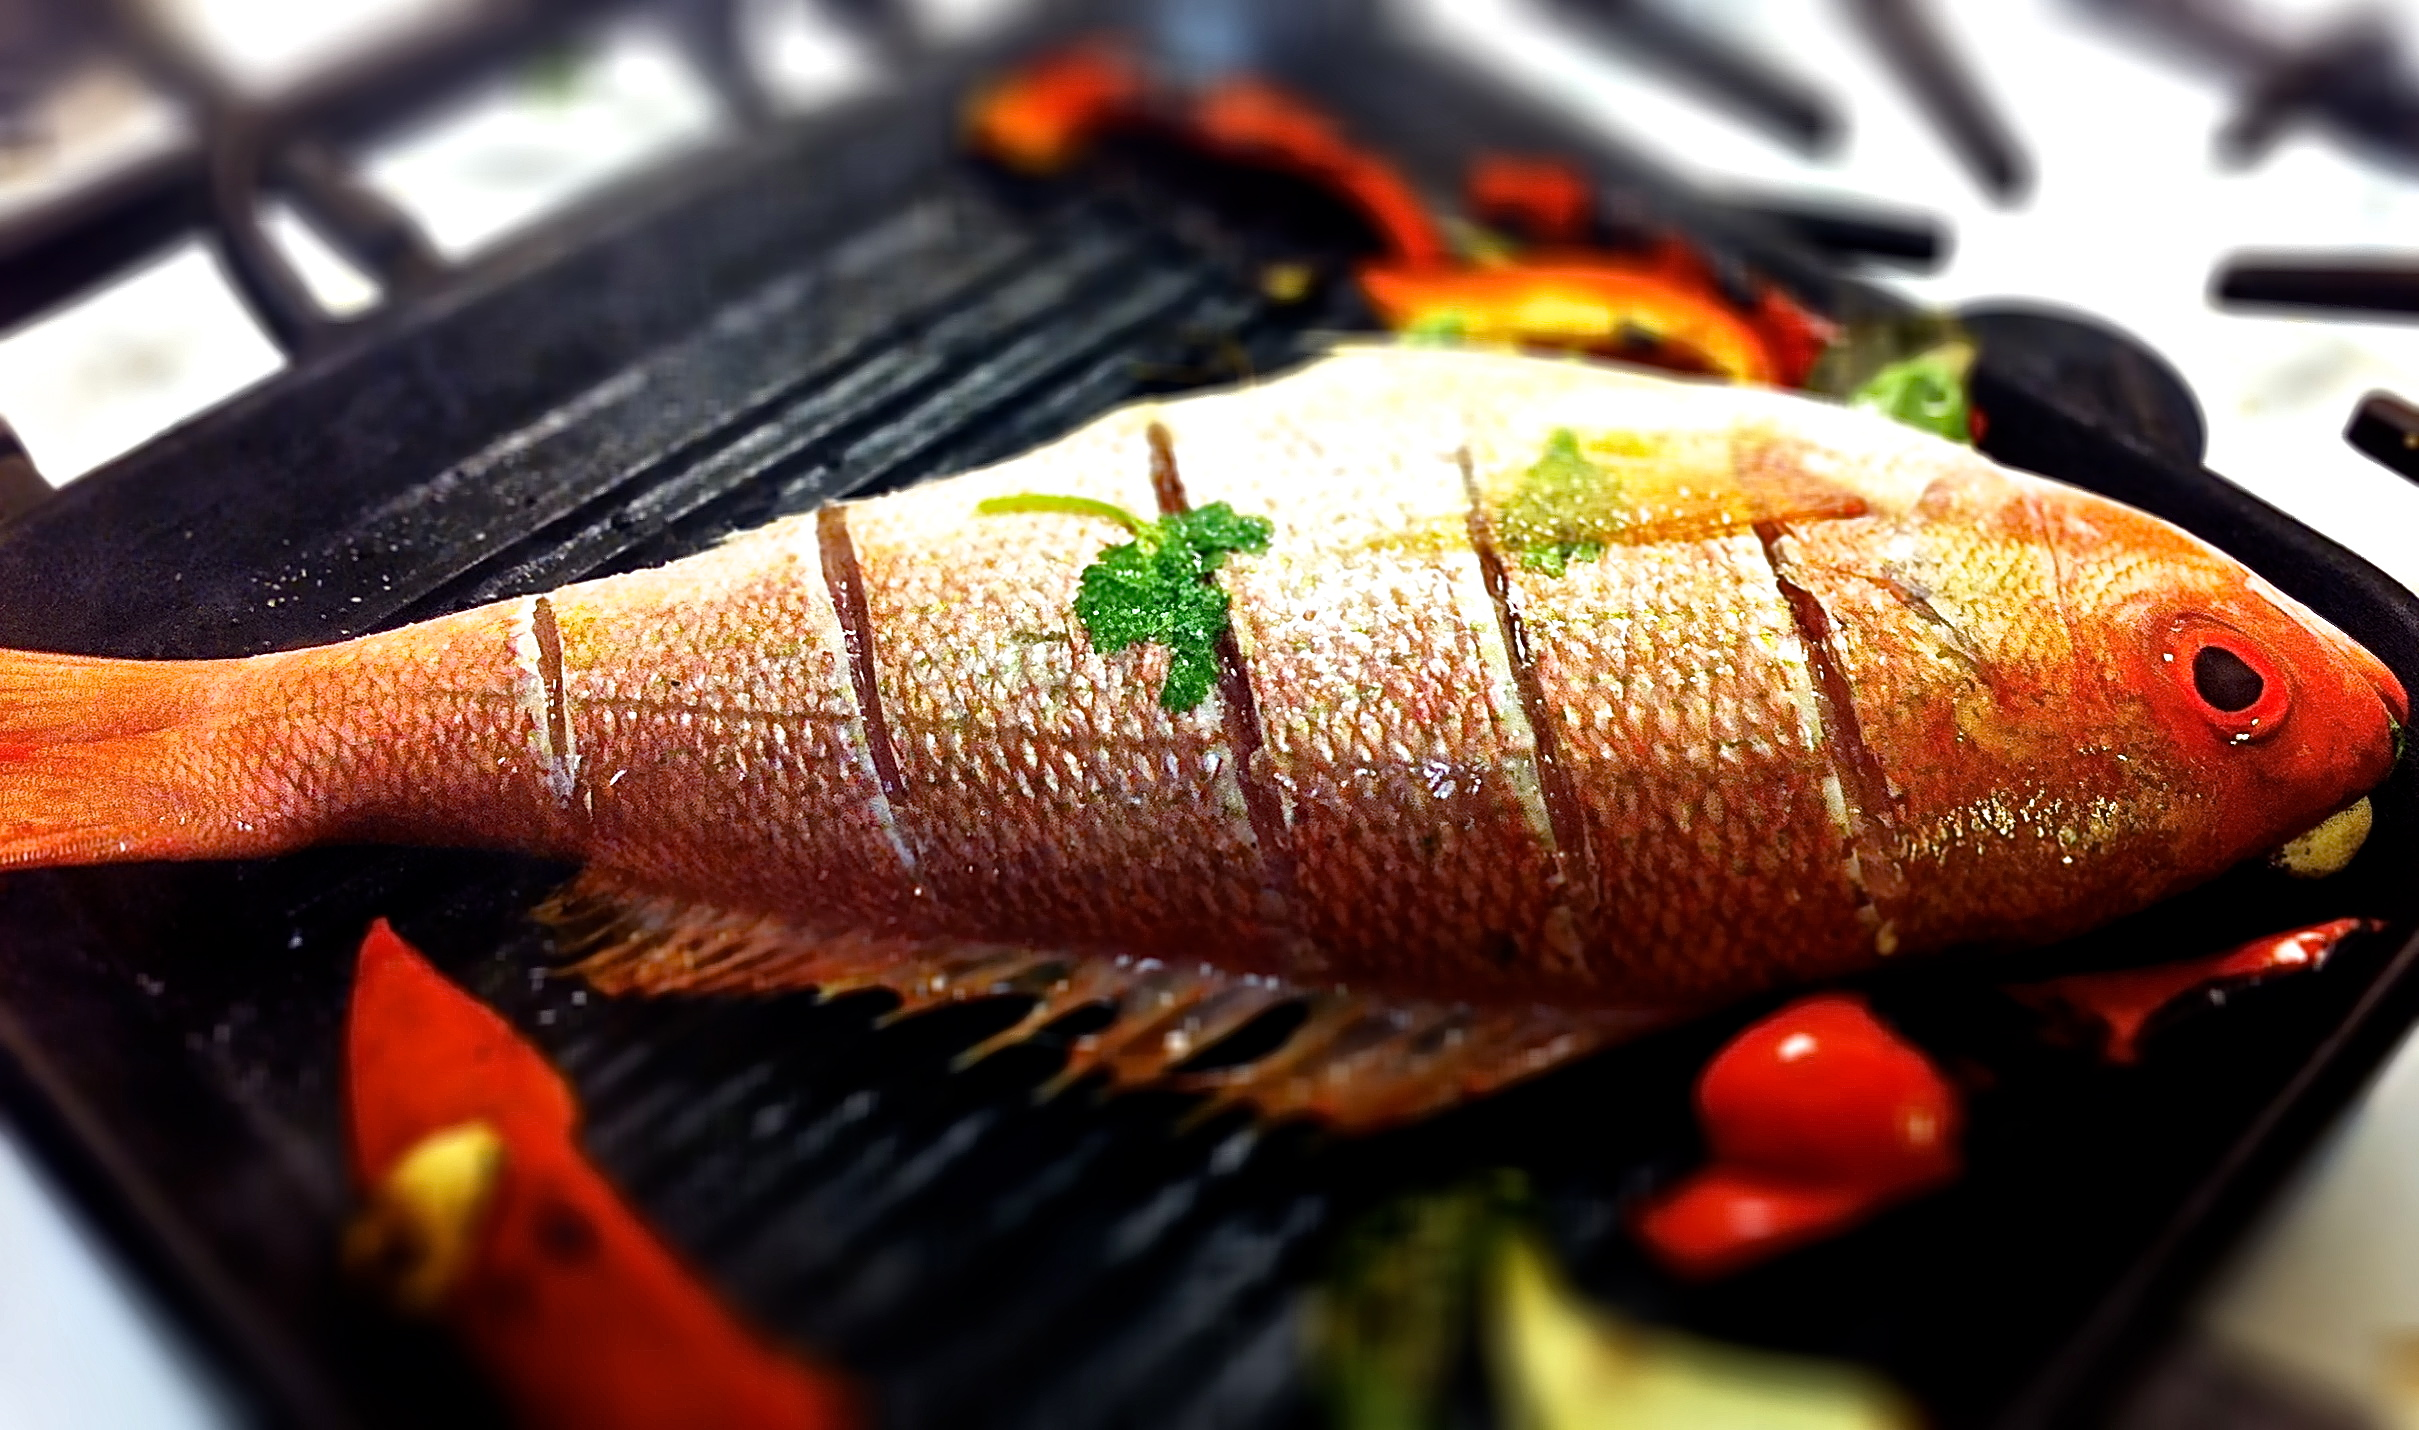 ... http://eatingininstead.com/2012/10/10/whole-grilled-fish-with-lime